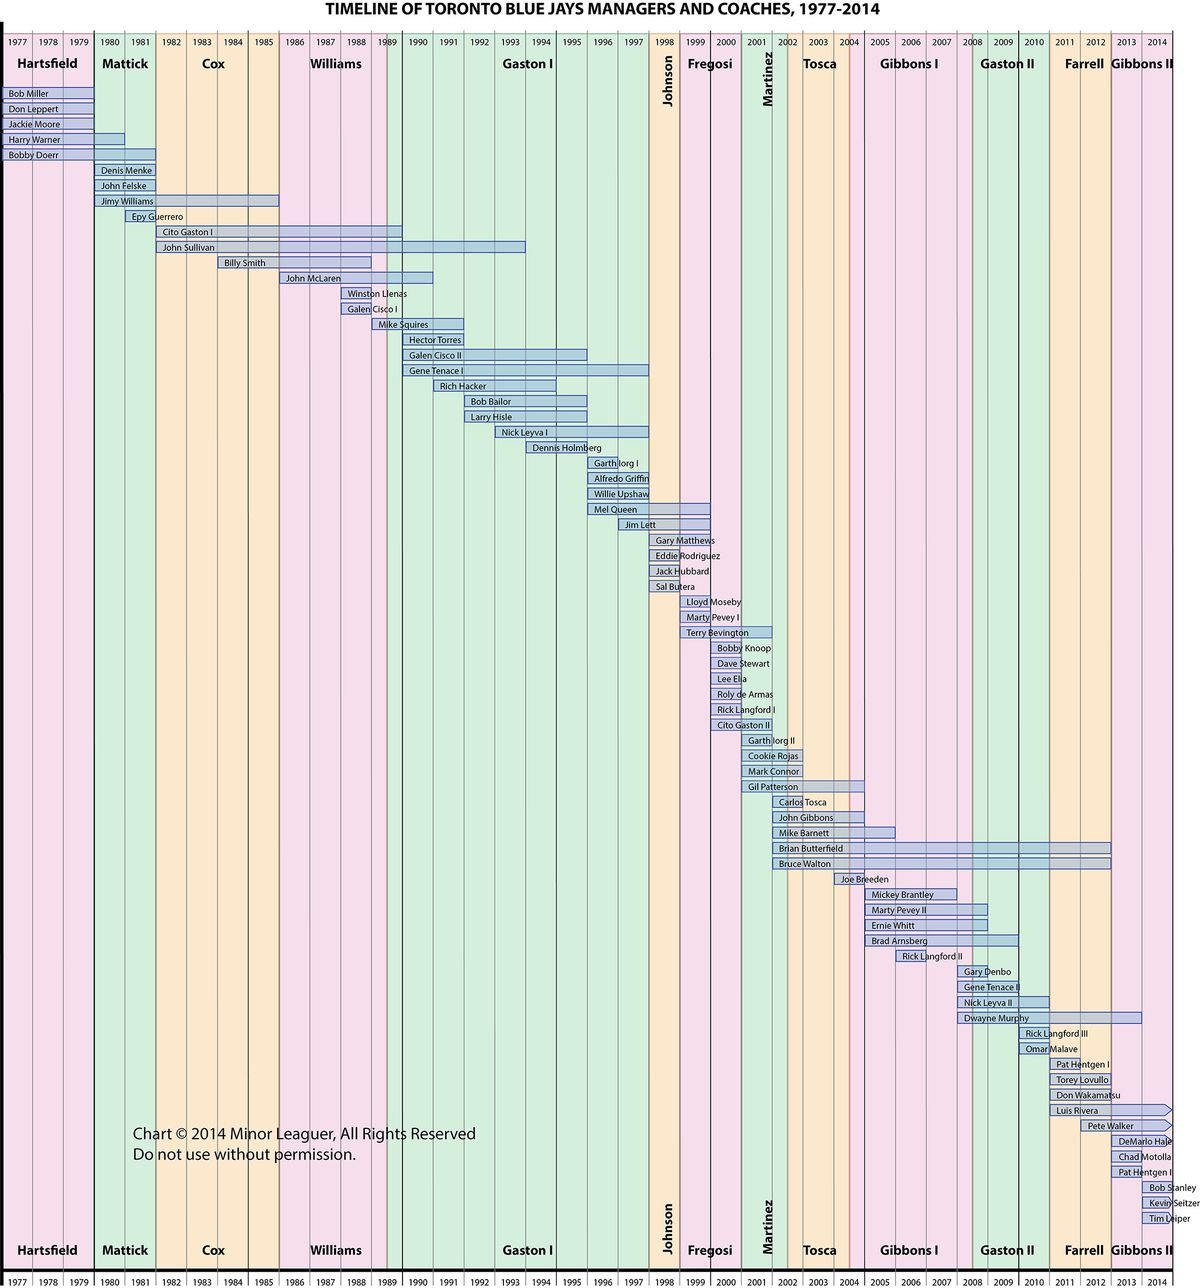 Managers & Coaches Timeline